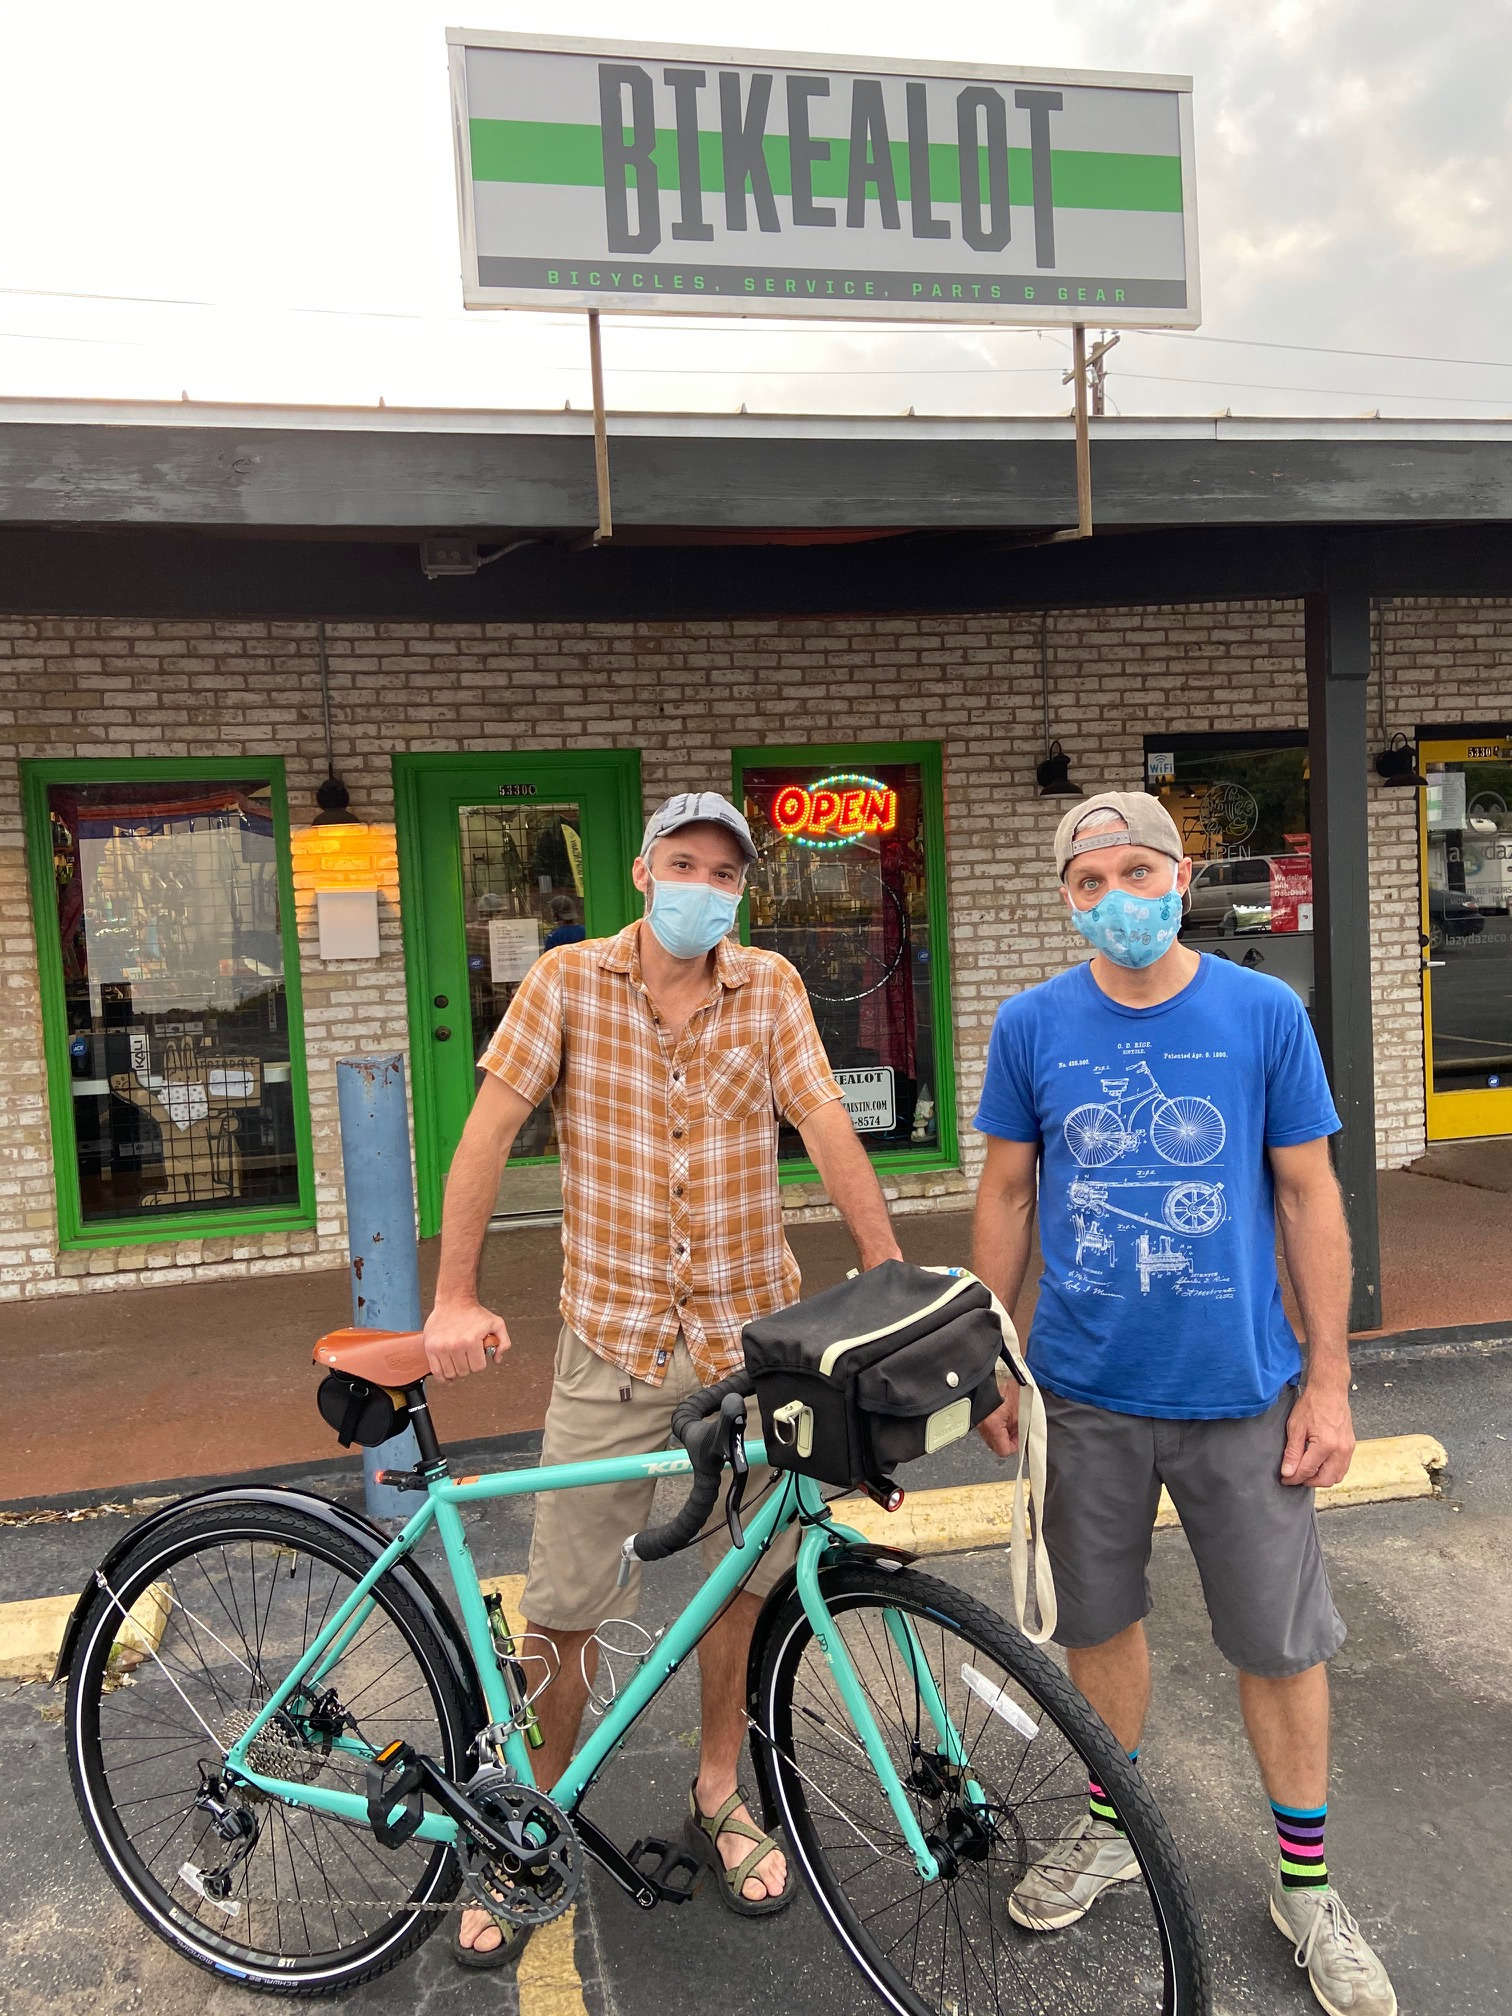 Both wearing masks, Brad and his brother, Shane, with Shane's new Kona Sutra, standing in front of the store